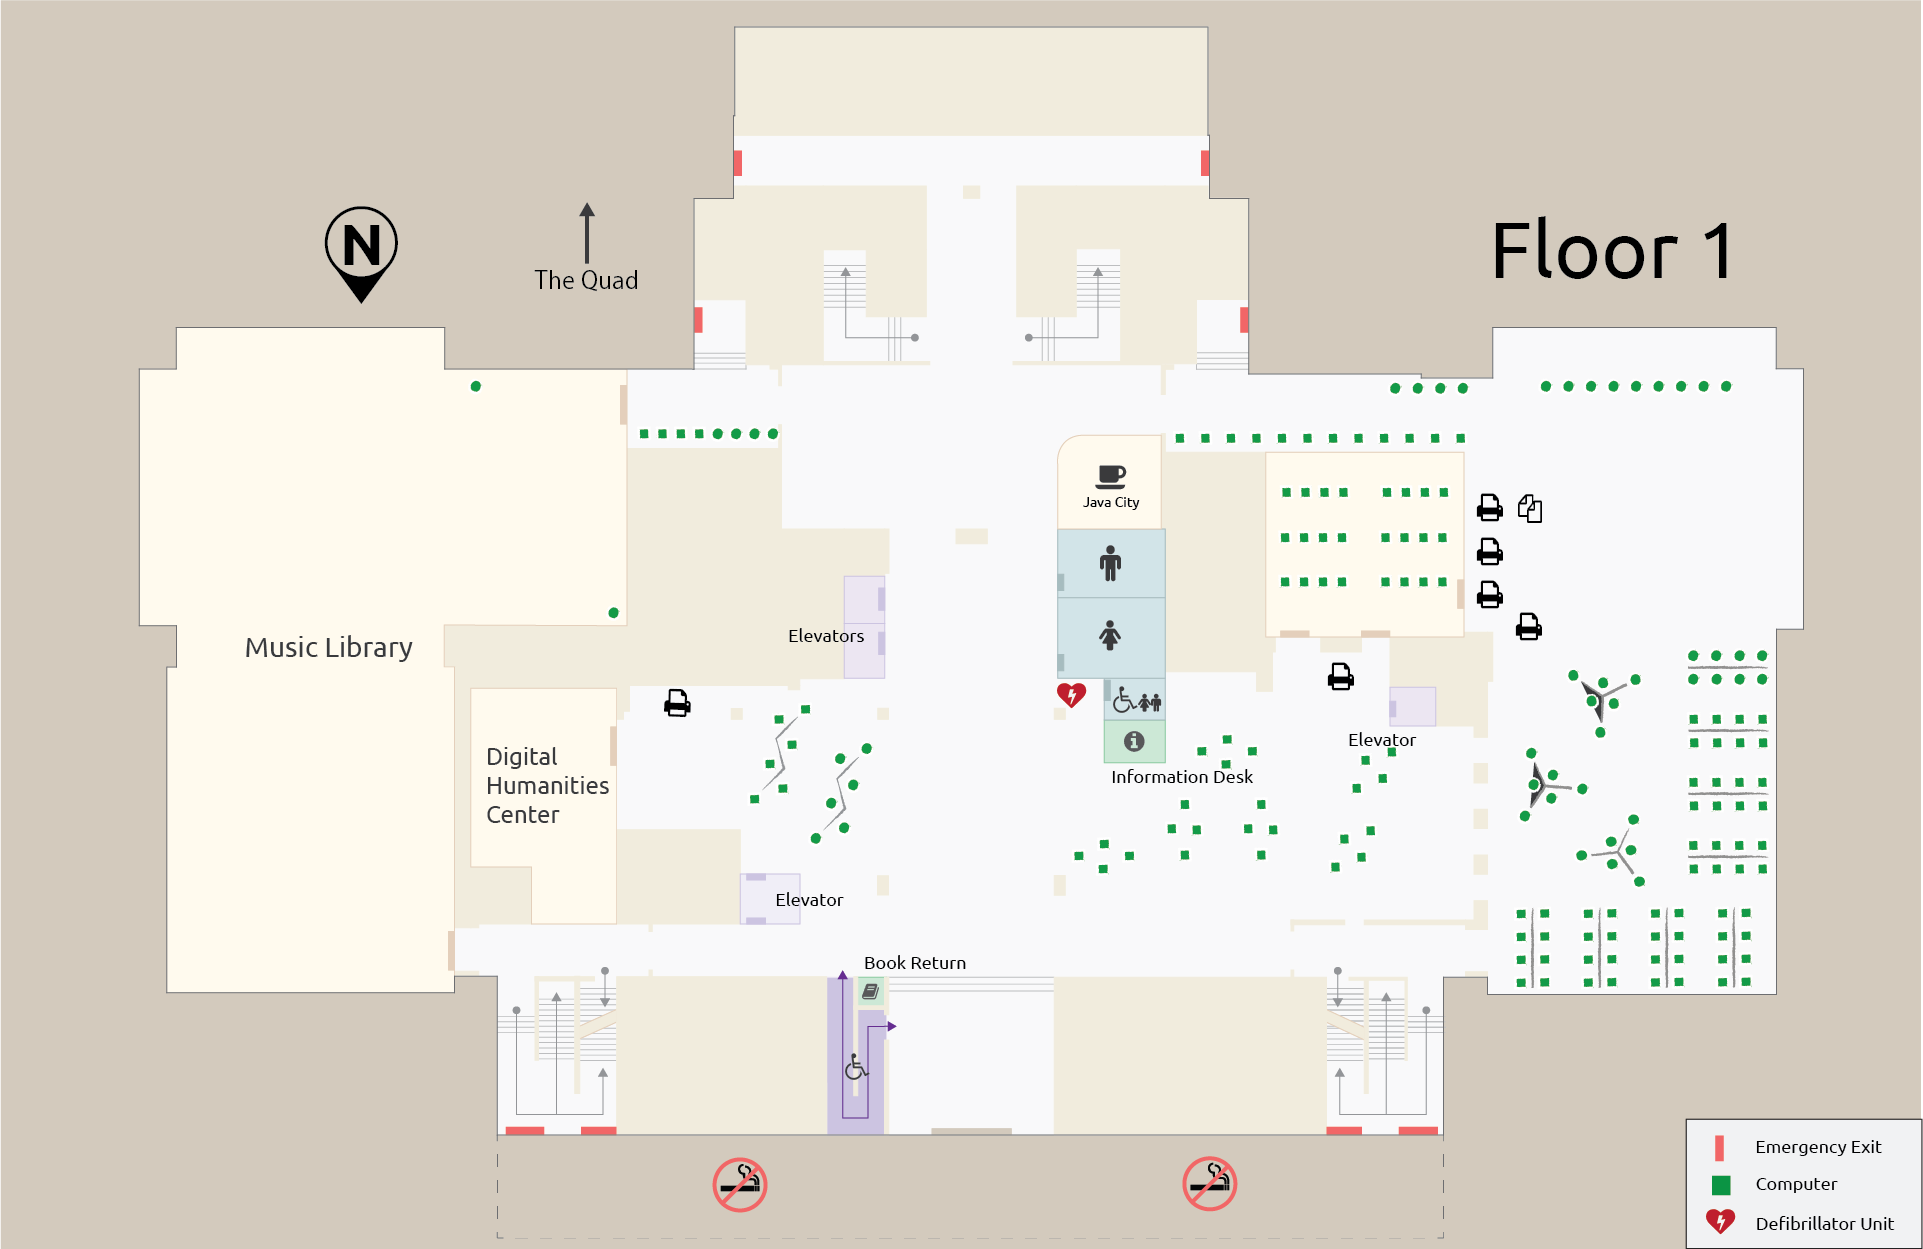 Gorgas floor plans the university of alabama libraries for At floor or on floor